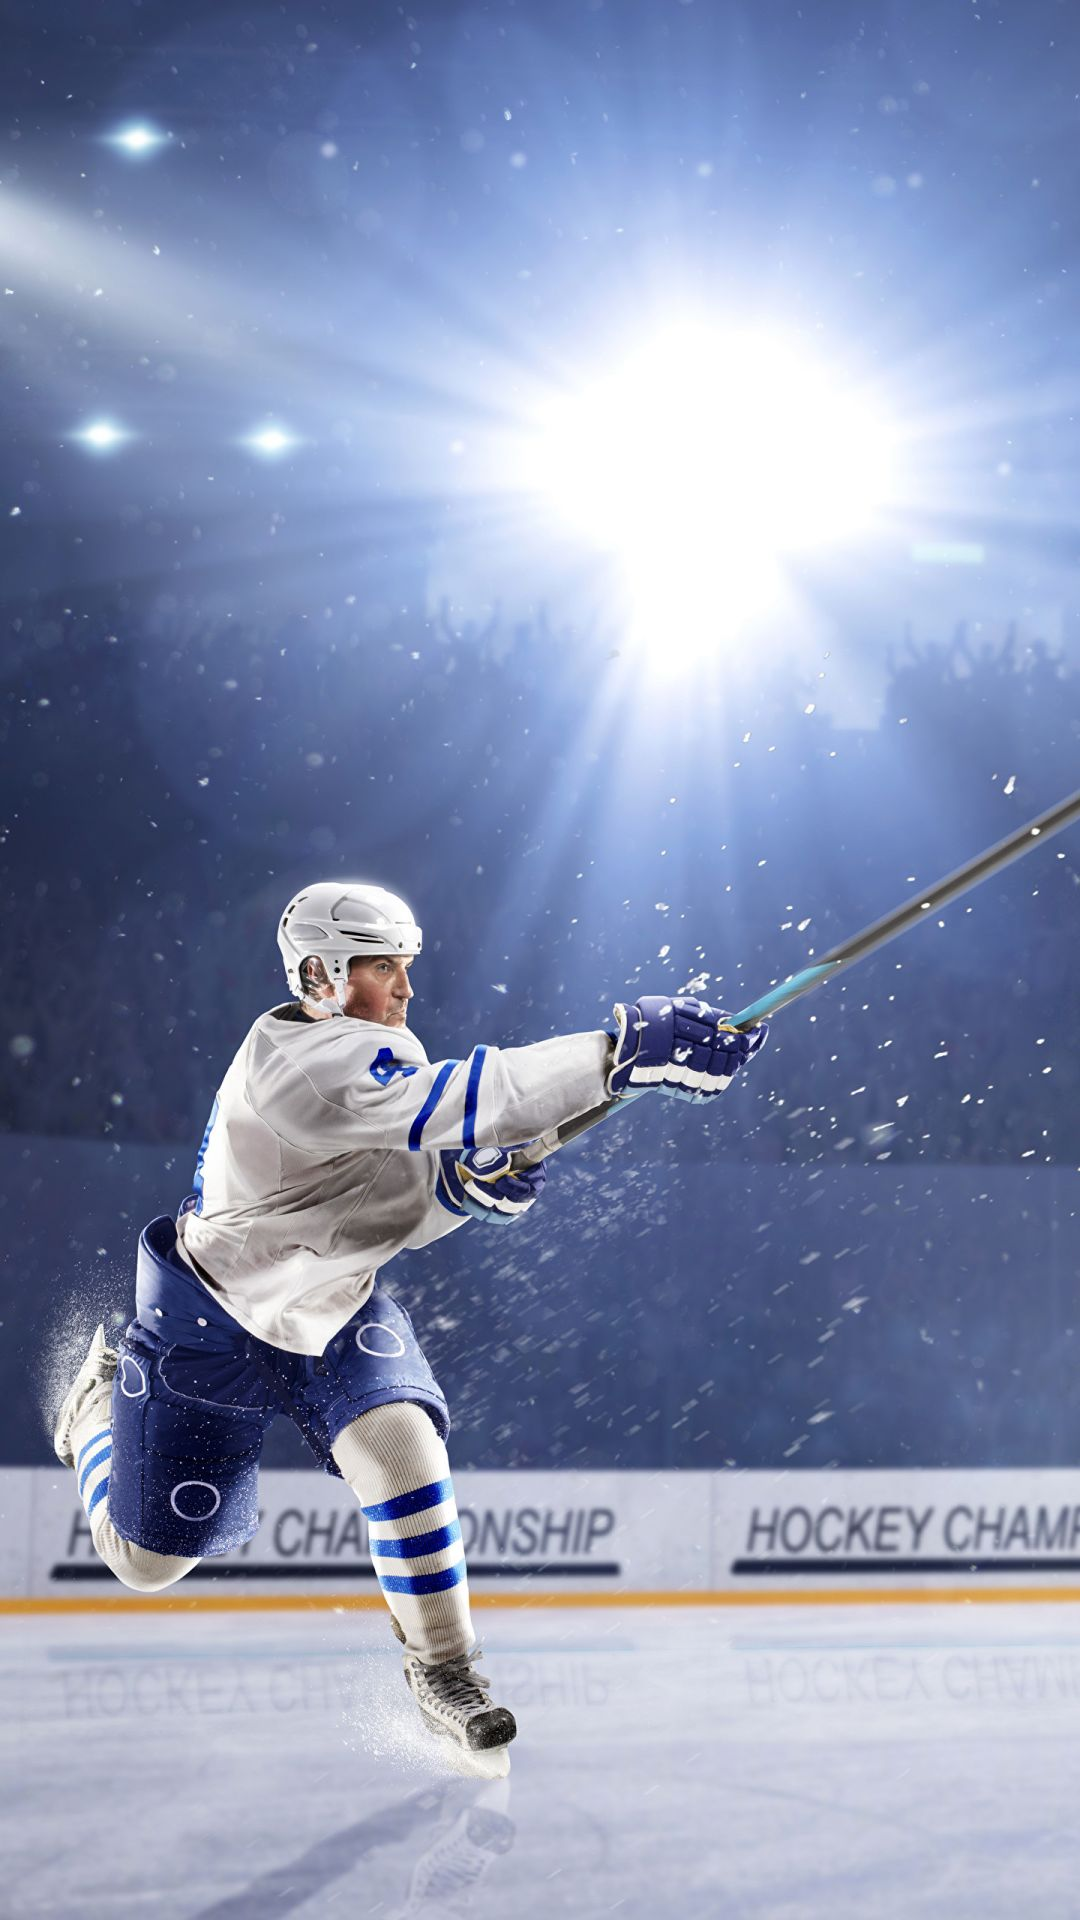 70 Ice Hockey Android Iphone Desktop Hd Backgrounds Wallpapers 1080p 4k 1440x2560 2020